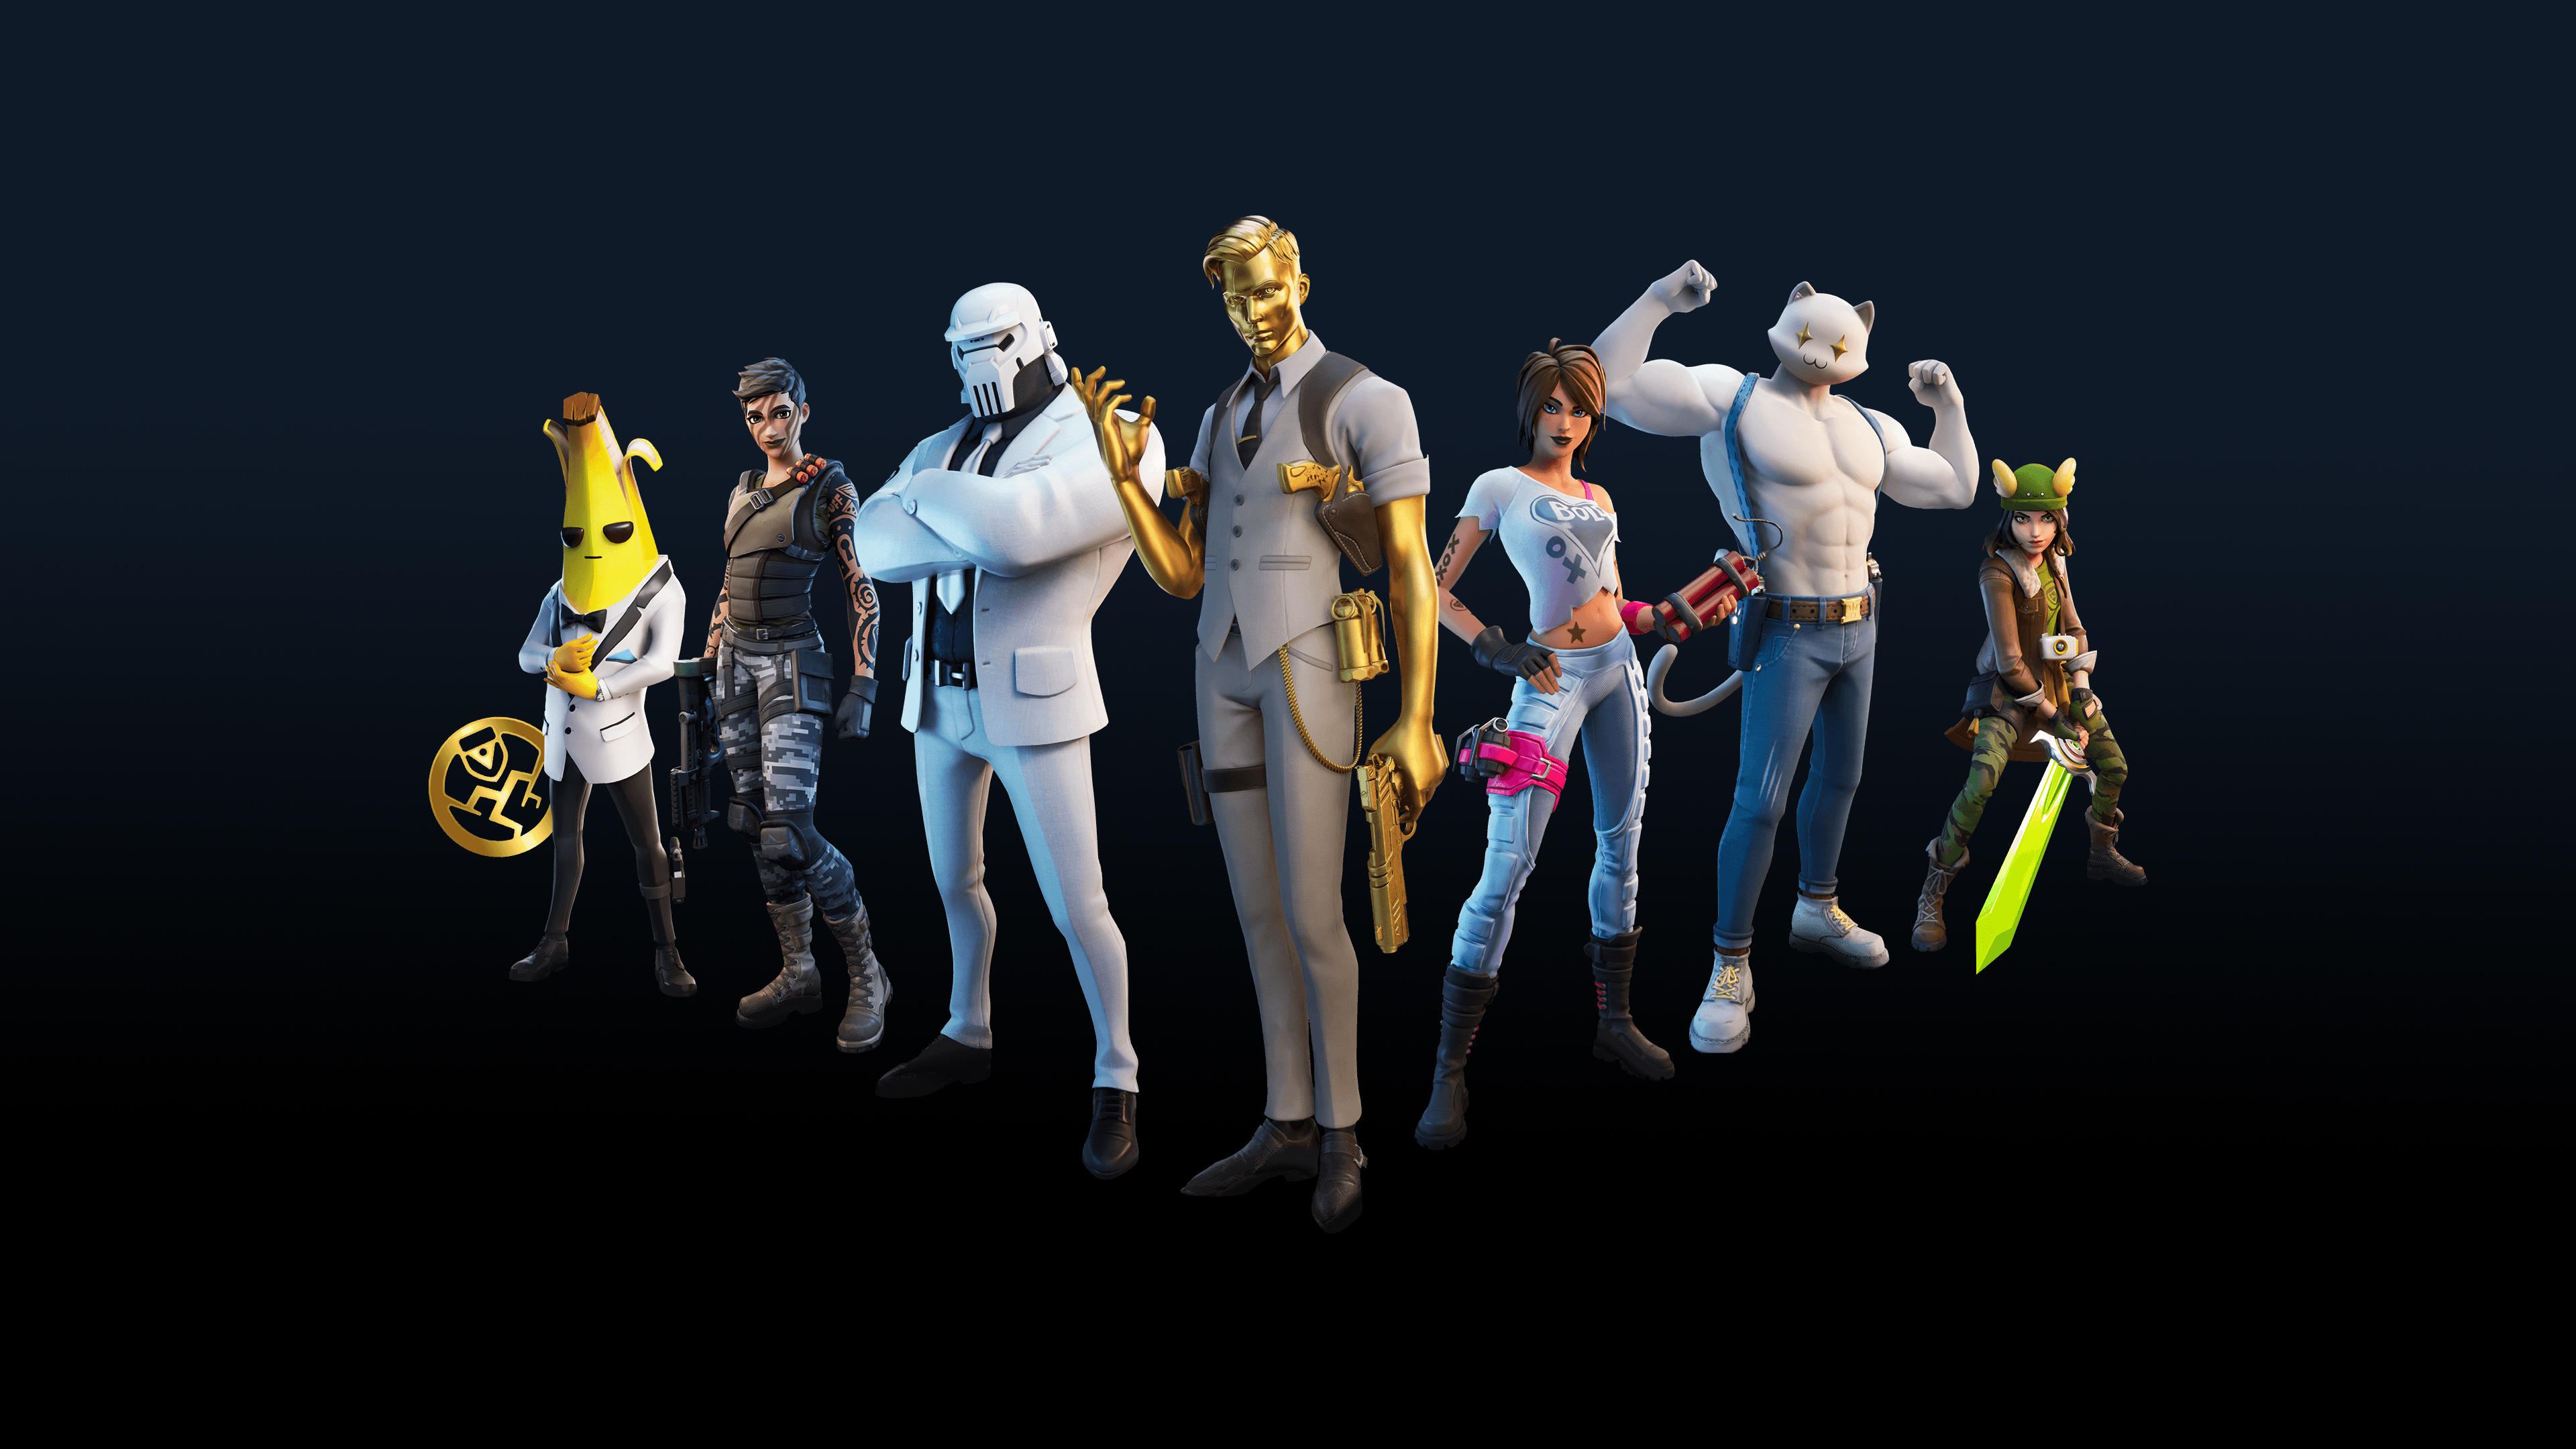 Fortnite Team Ghost Wallpaper Hd Games 4k Wallpapers Images Photos And Background